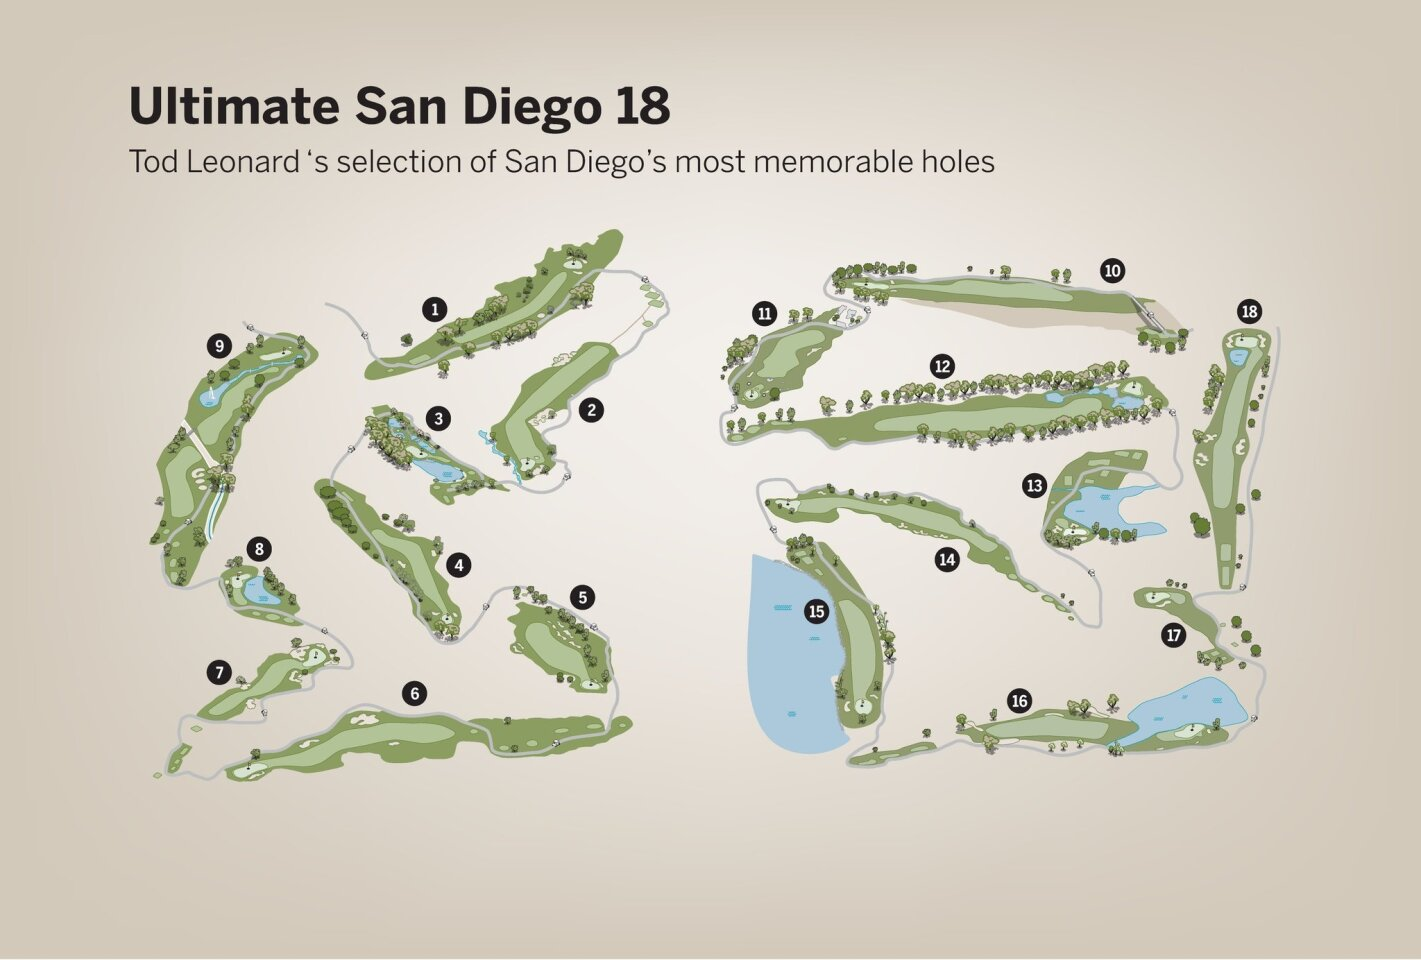 San Diego's ultimate golf course